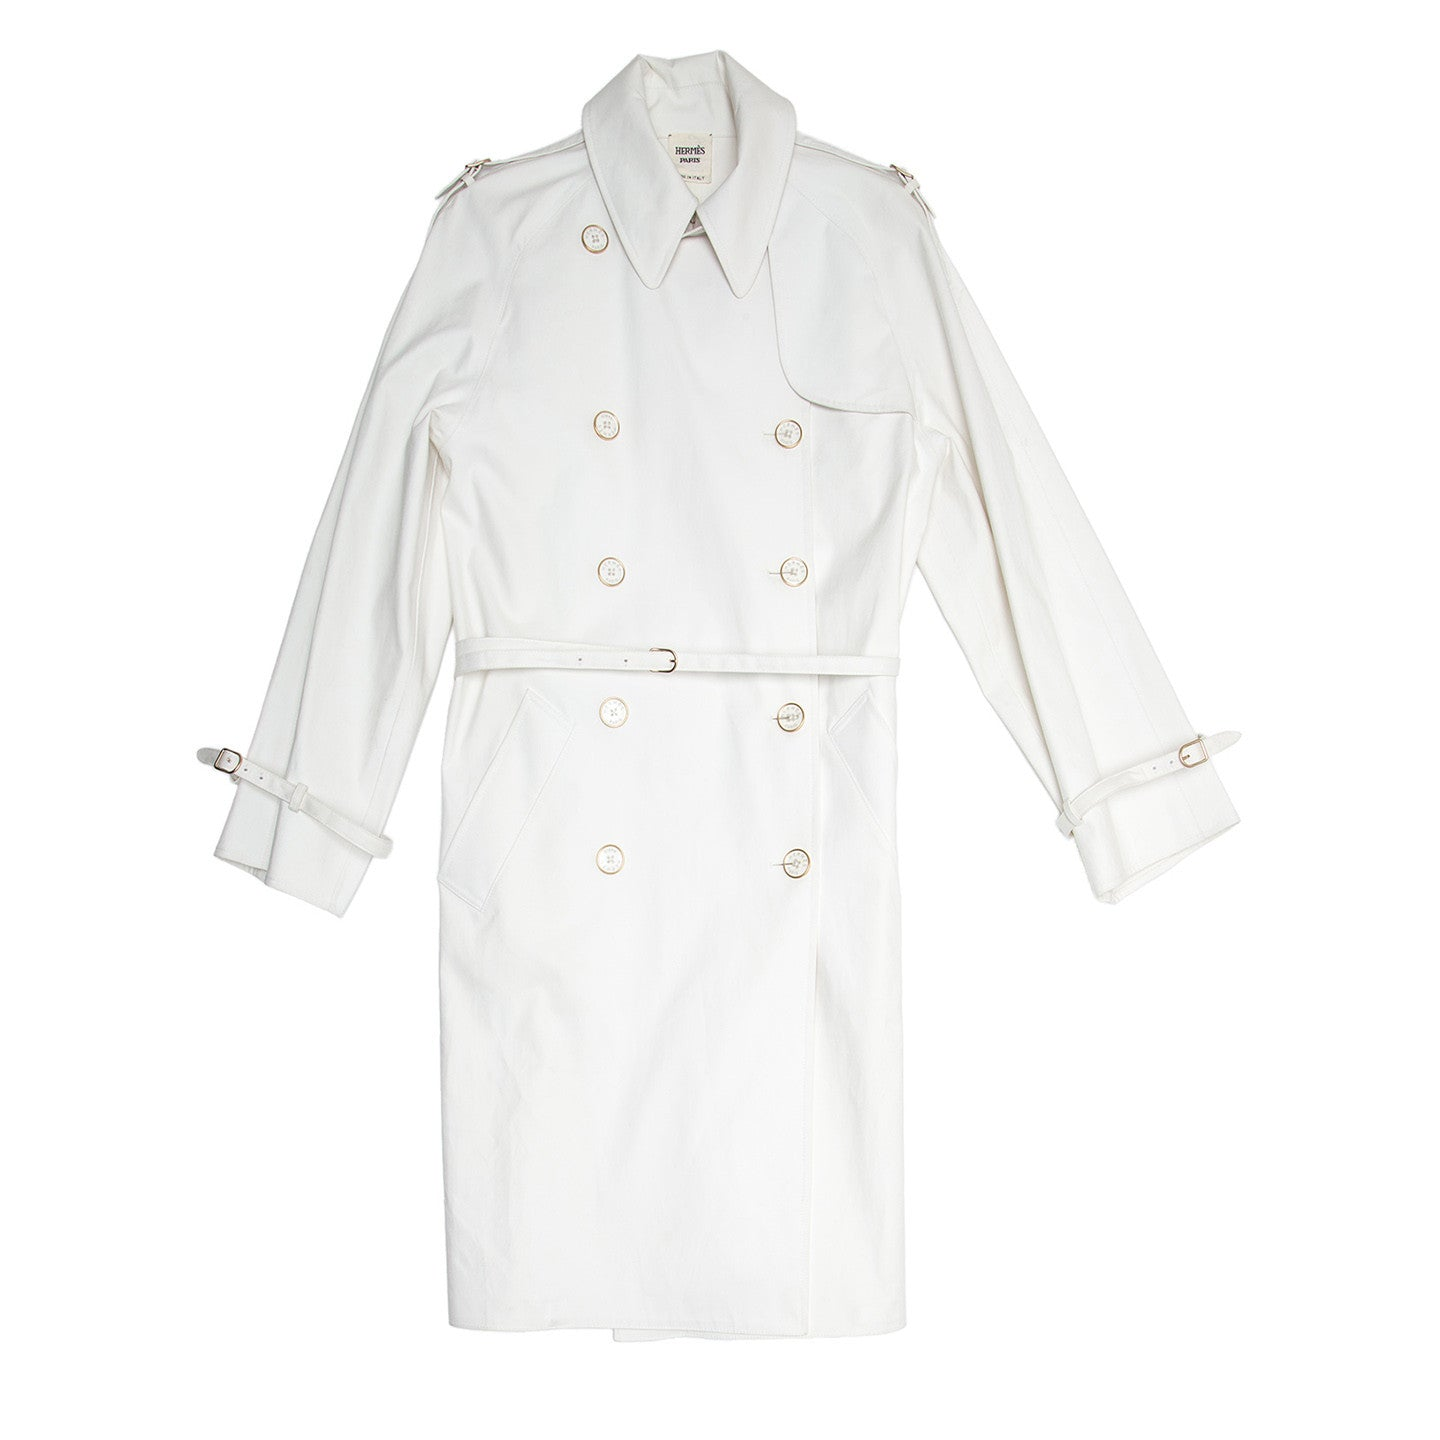 Find authentic preowned Hermès White Double Breasted Trench Coat, size 42 (Italian) at BunnyJack, where a portion of every sale goes to charity.